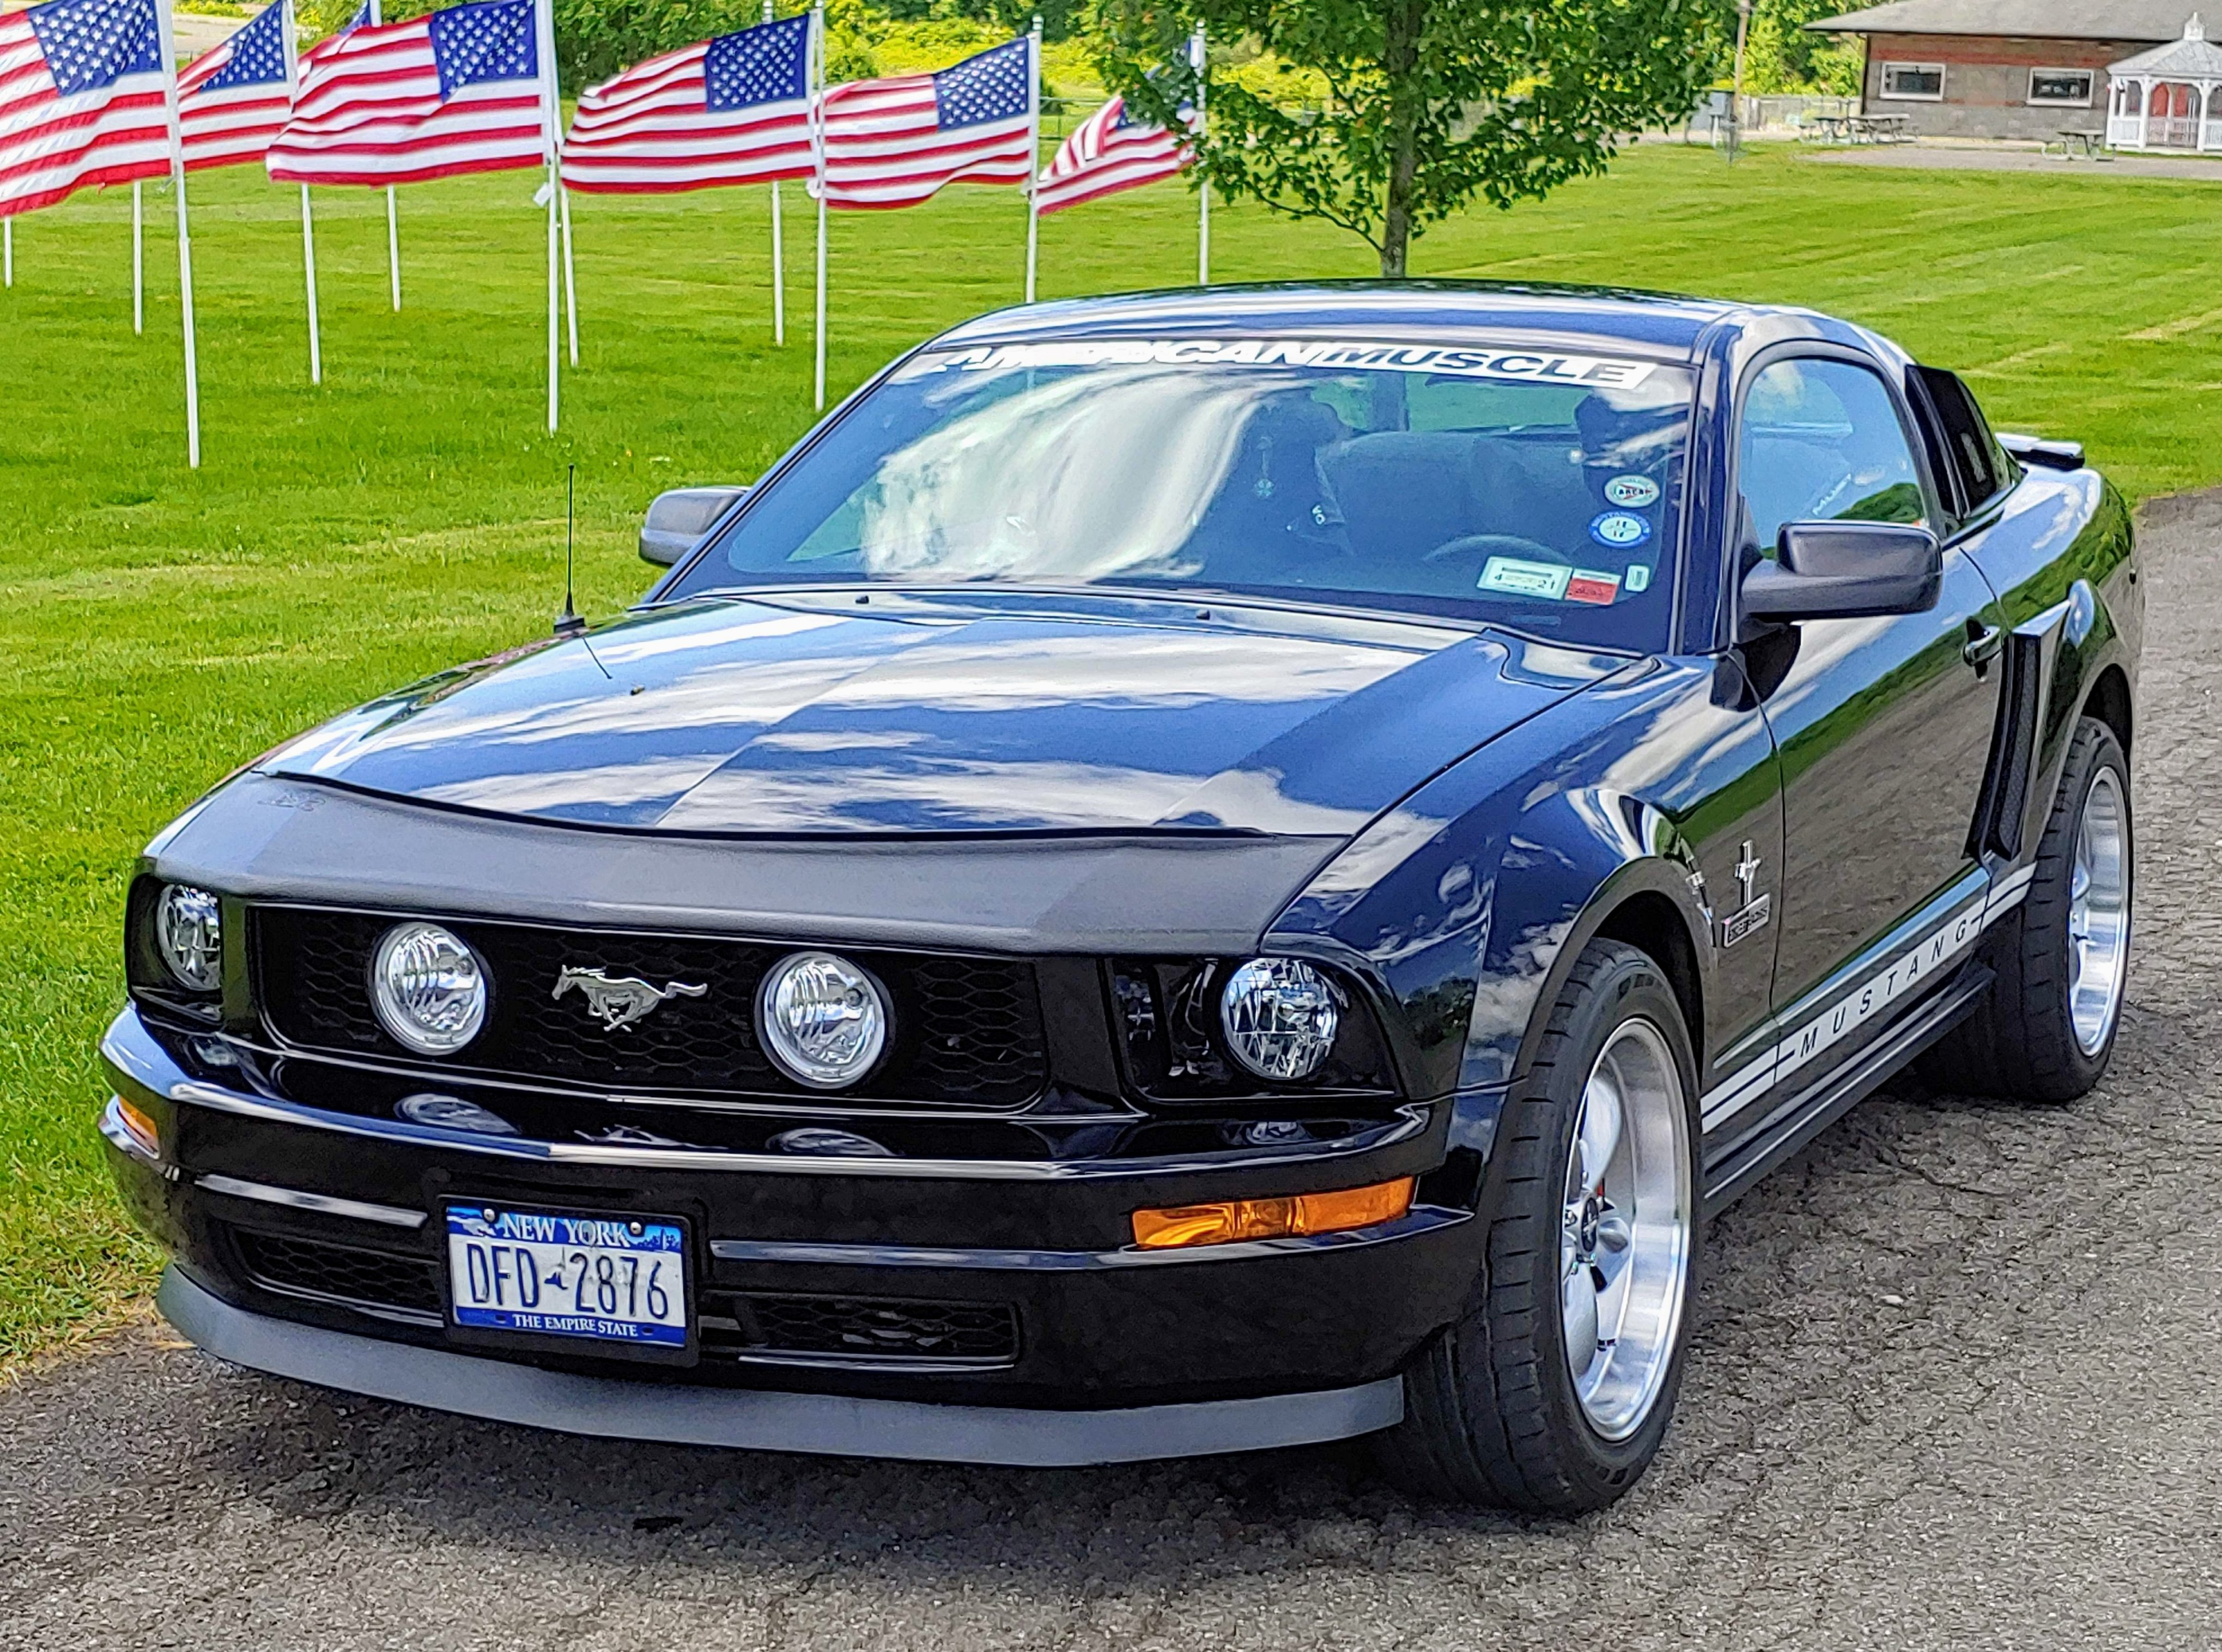 Click image for larger version  Name:Mustang with flags.3.jpg Views:14 Size:2.16 MB ID:258413